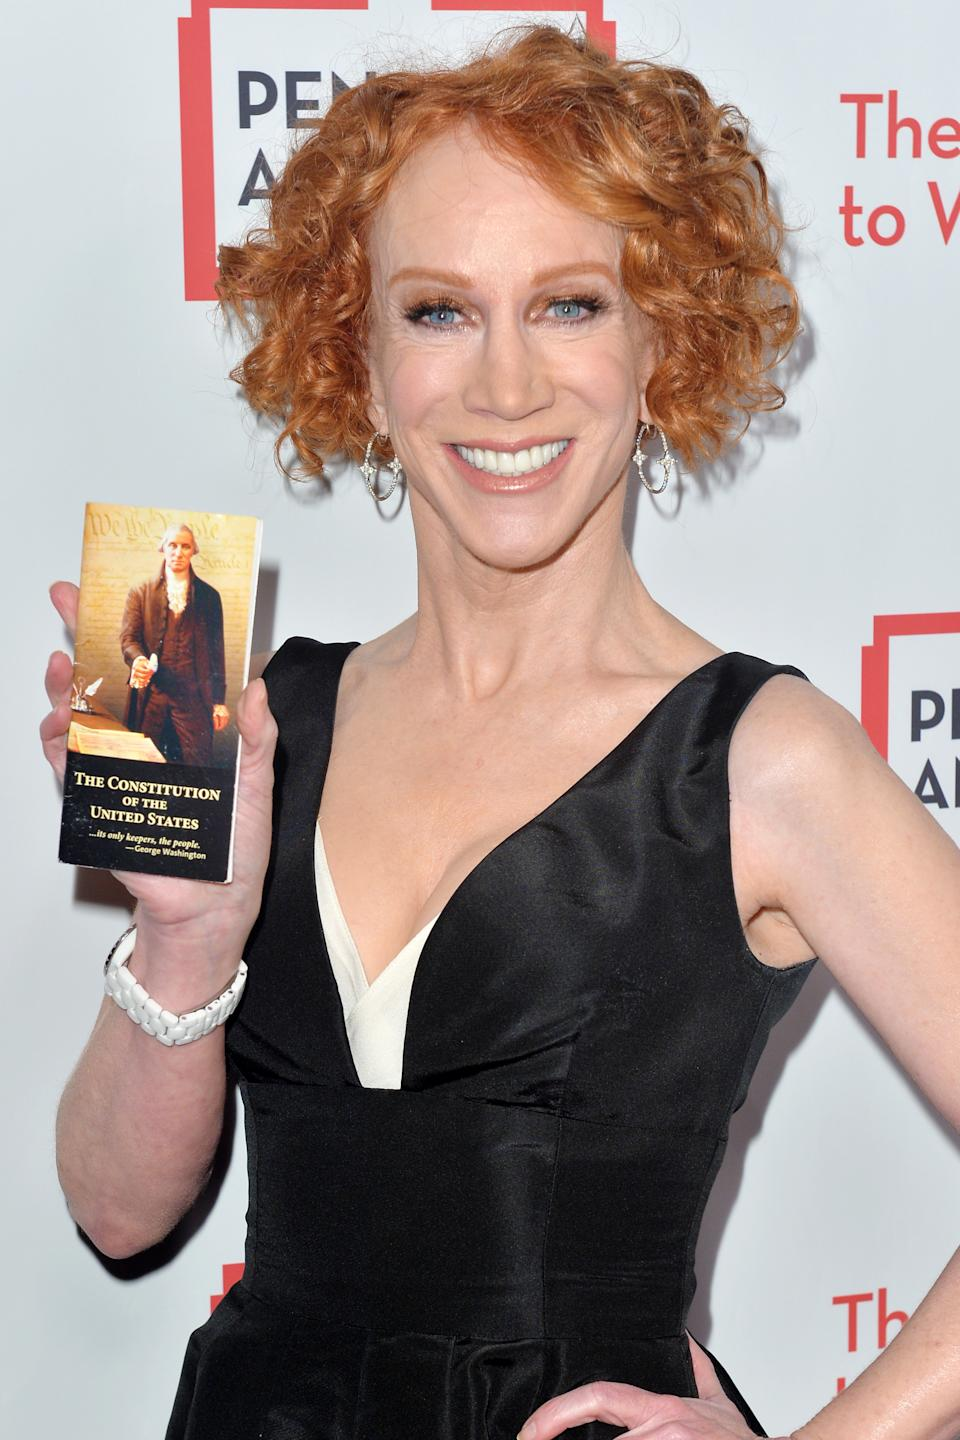 BEVERLY HILLS, CALIFORNIA - NOVEMBER 01: Kathy Griffin arrives at Pen America's 2019 Litfest Gala at the Beverly Wilshire Four Seasons Hotel on November 01, 2019 in Beverly Hills, California. (Photo by Jerod Harris/Getty Images)